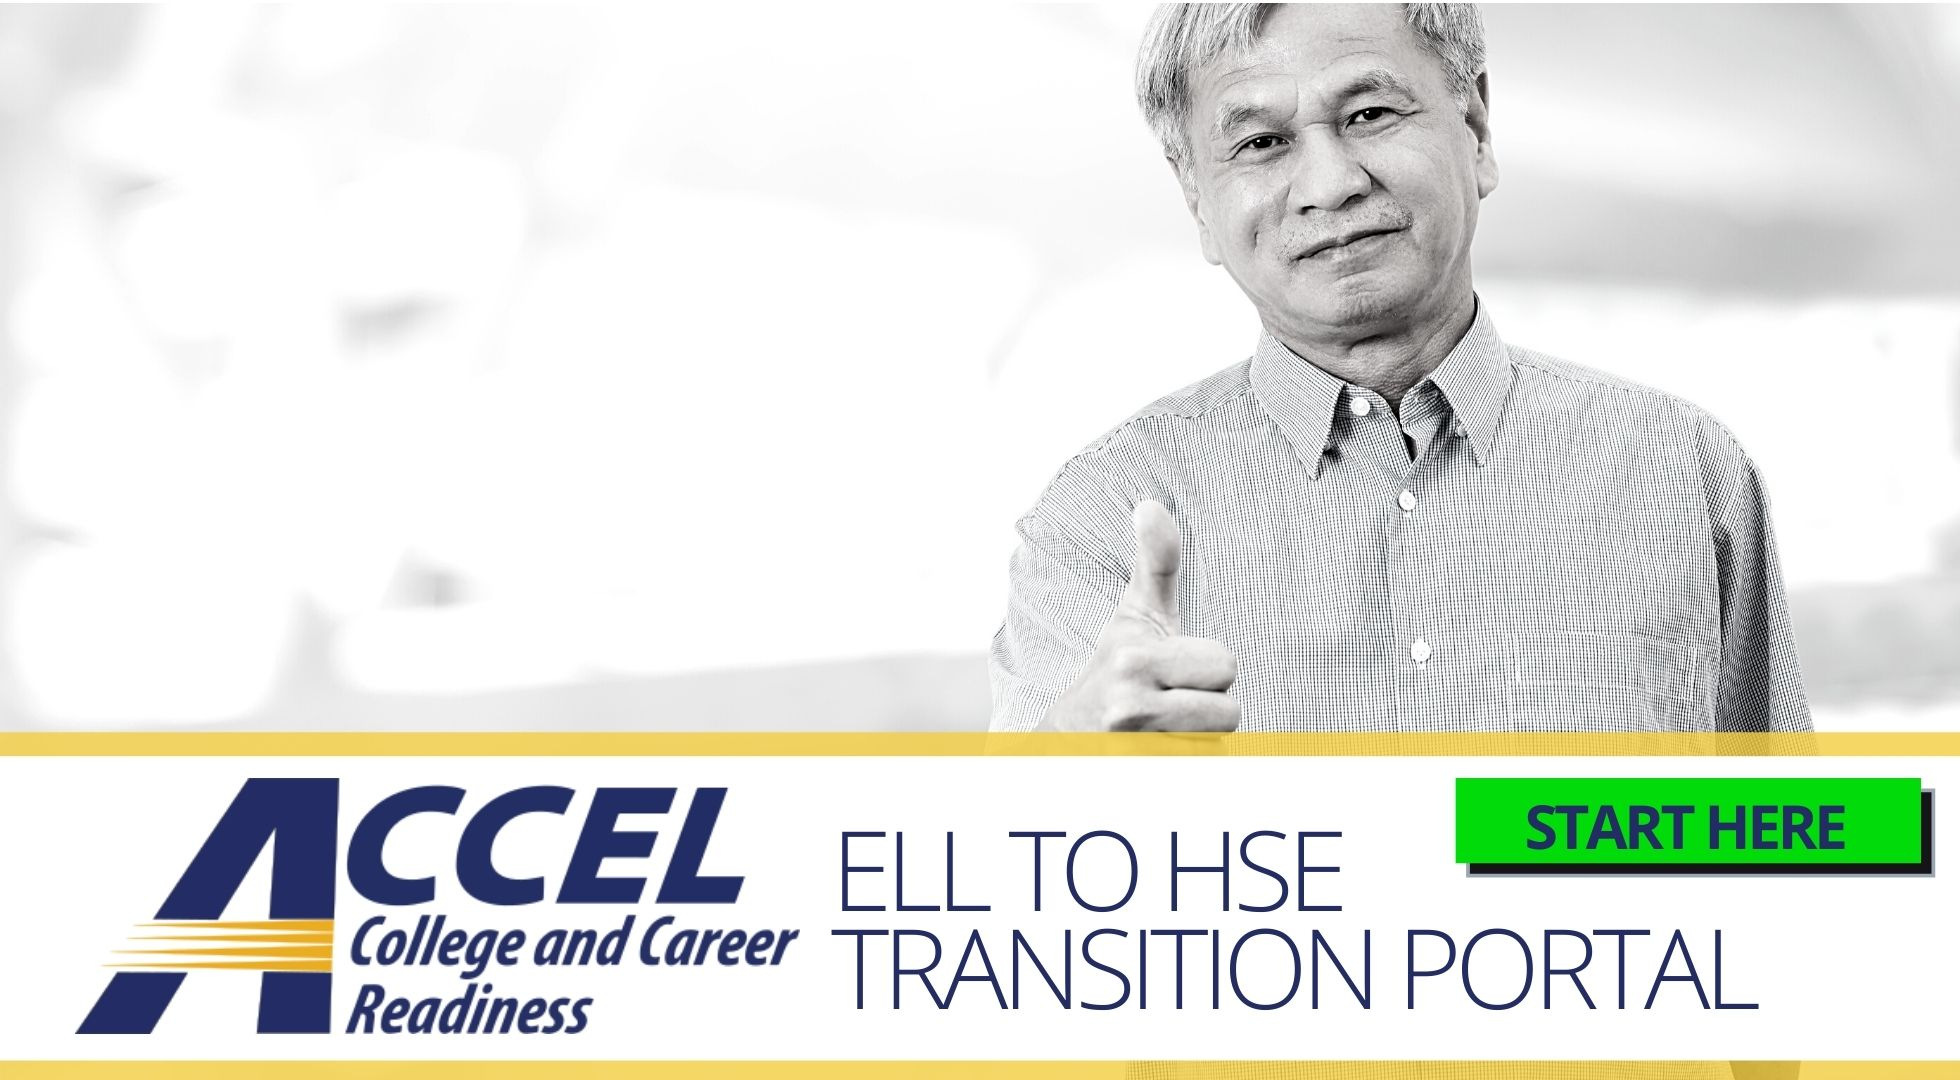 ELL to HSE Transition Portal